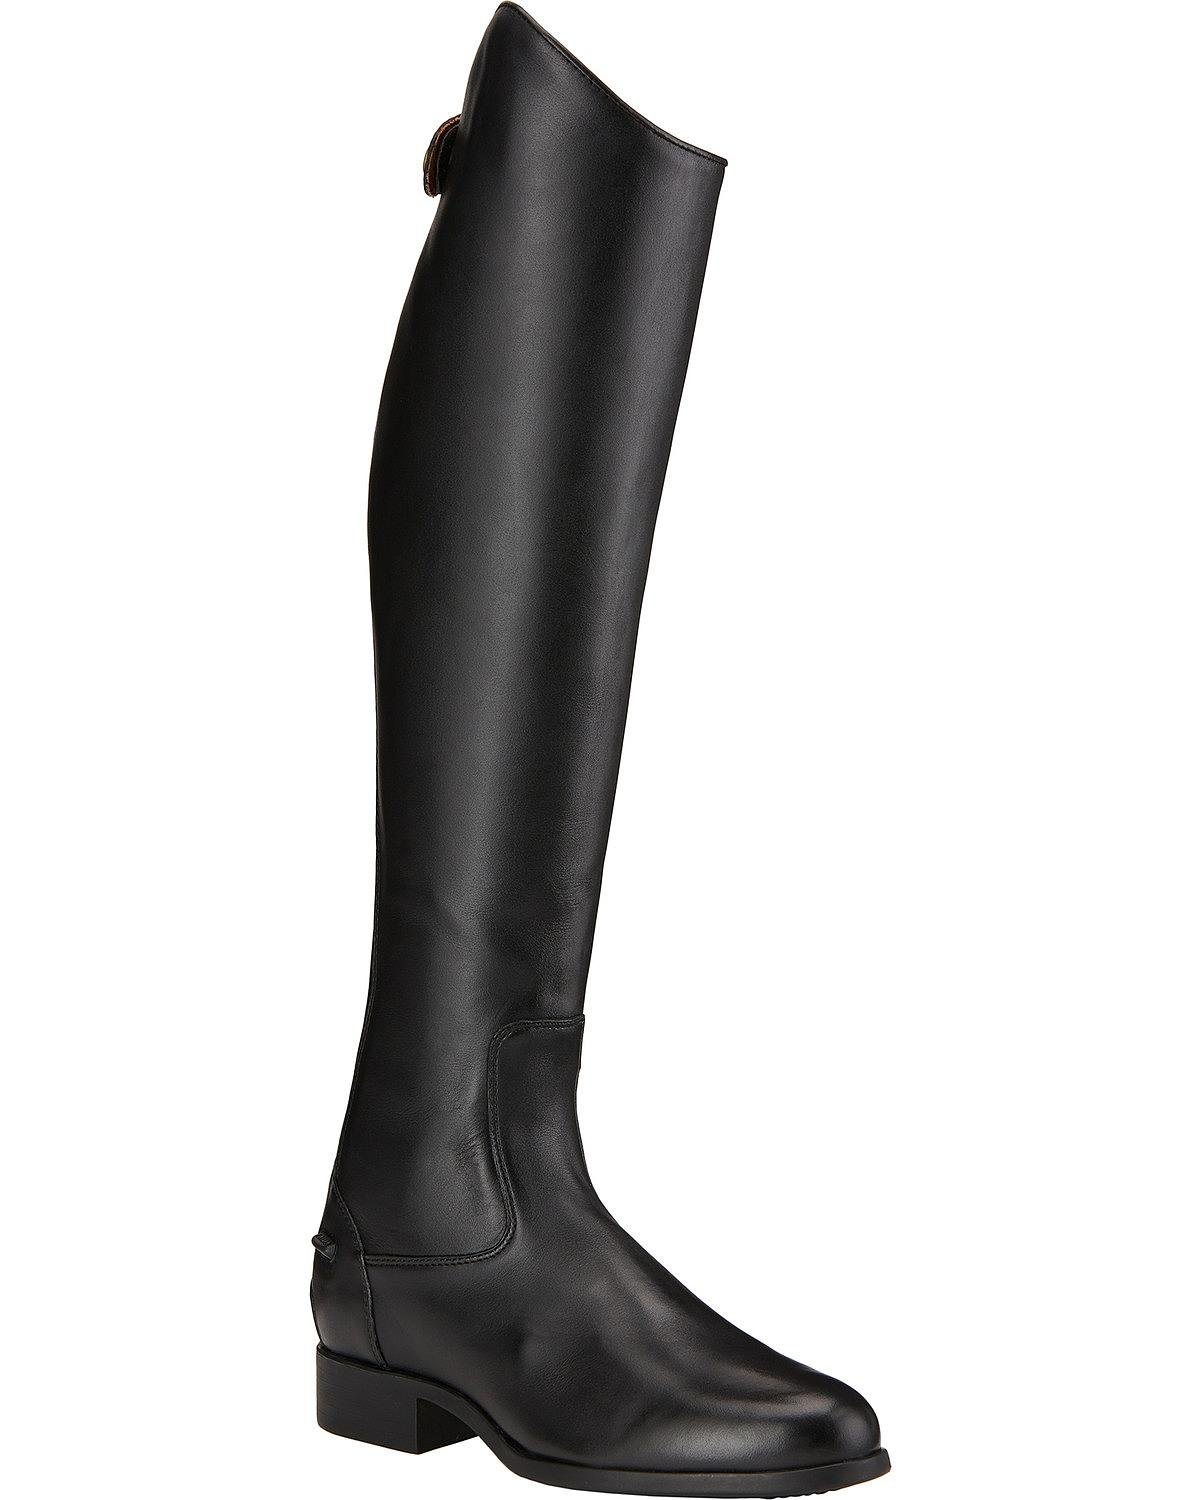 Ariat Damen Reitstiefel Heritage Contour Dress Zip schwarz